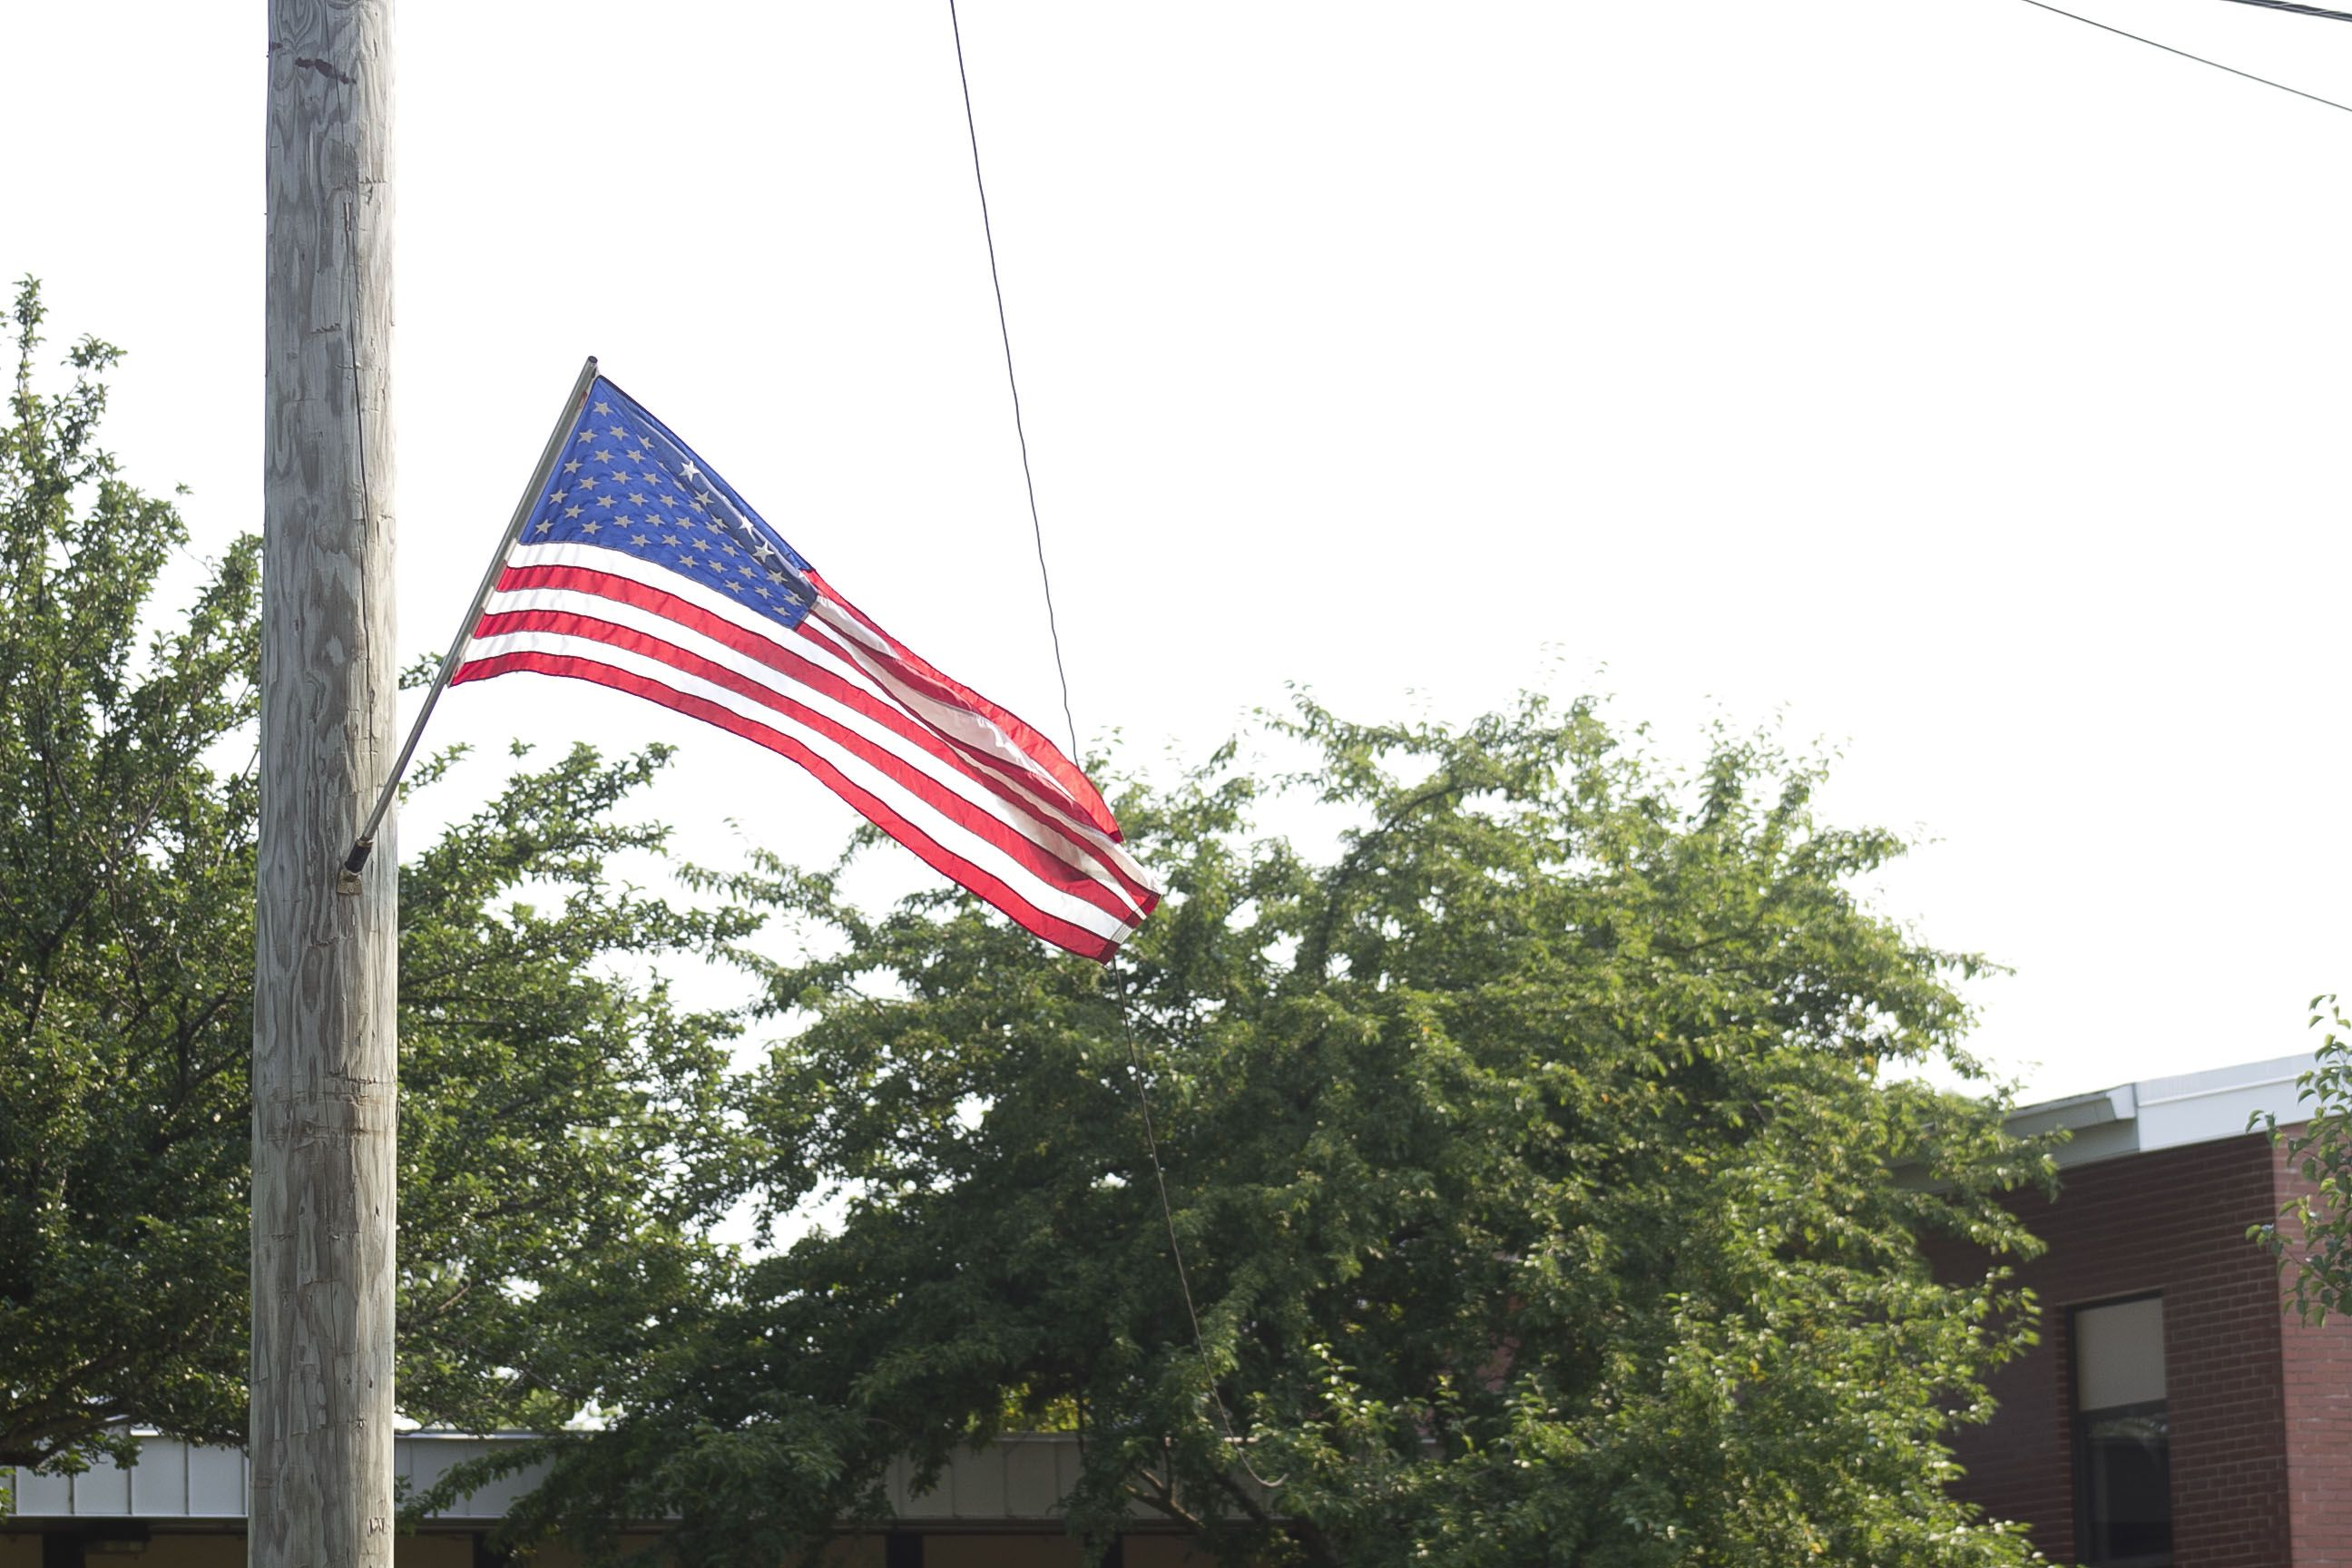 Yorkville residents lined the streets July 3, to watch the city's annual Fourth of July parade and gather after at Town Square Park to listen to the Community Band and continue the celebration.